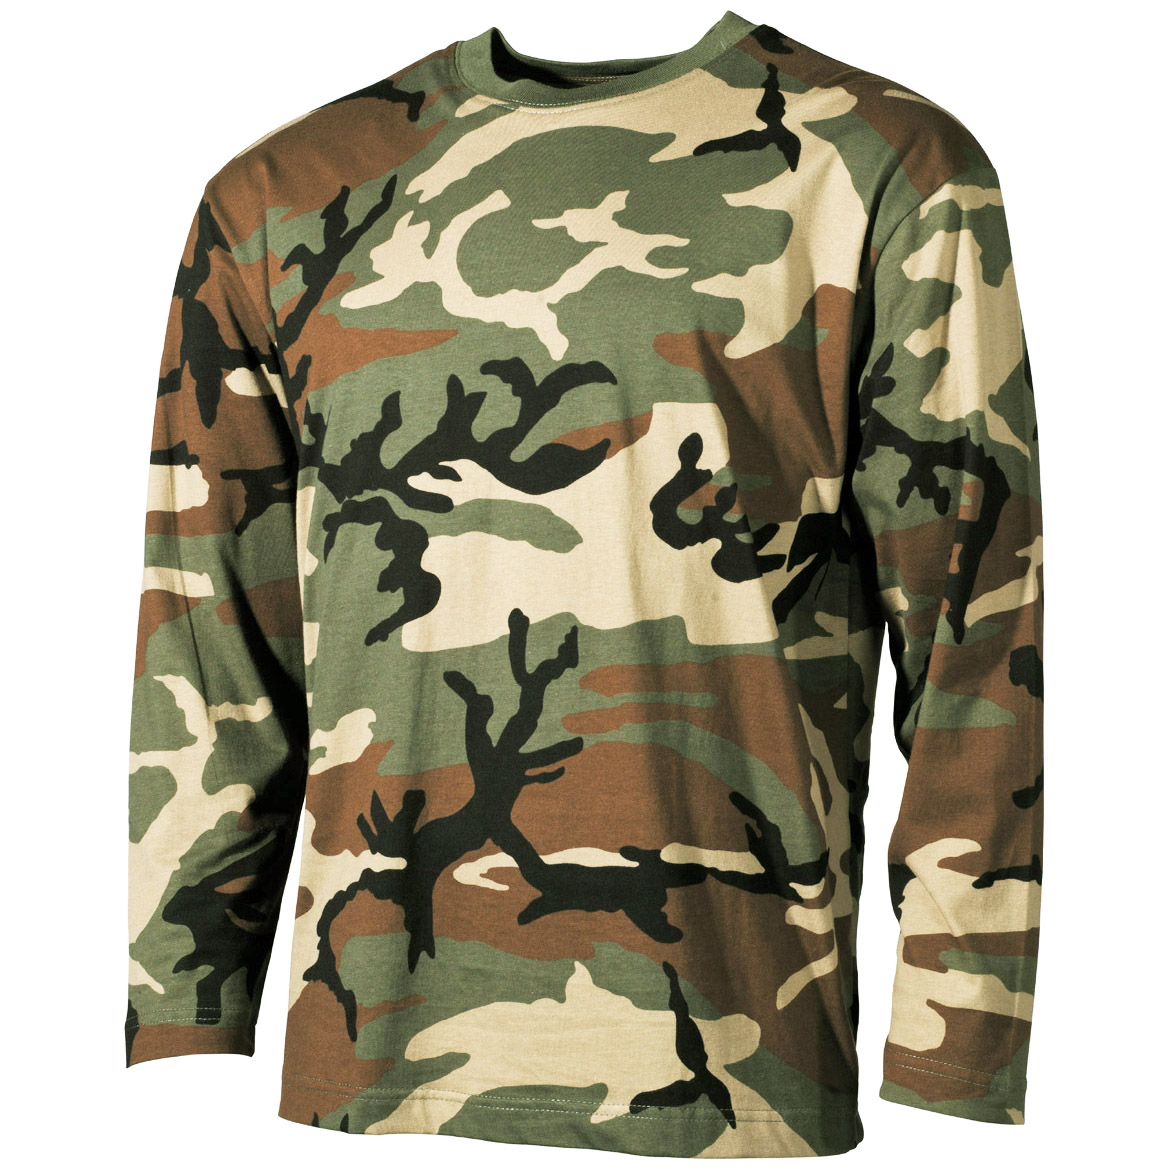 Details about US Style Combat Army Military Mens Long Sleeve T-Shirt  Woodland Camouflage S-XXL 5ed793c7d01e